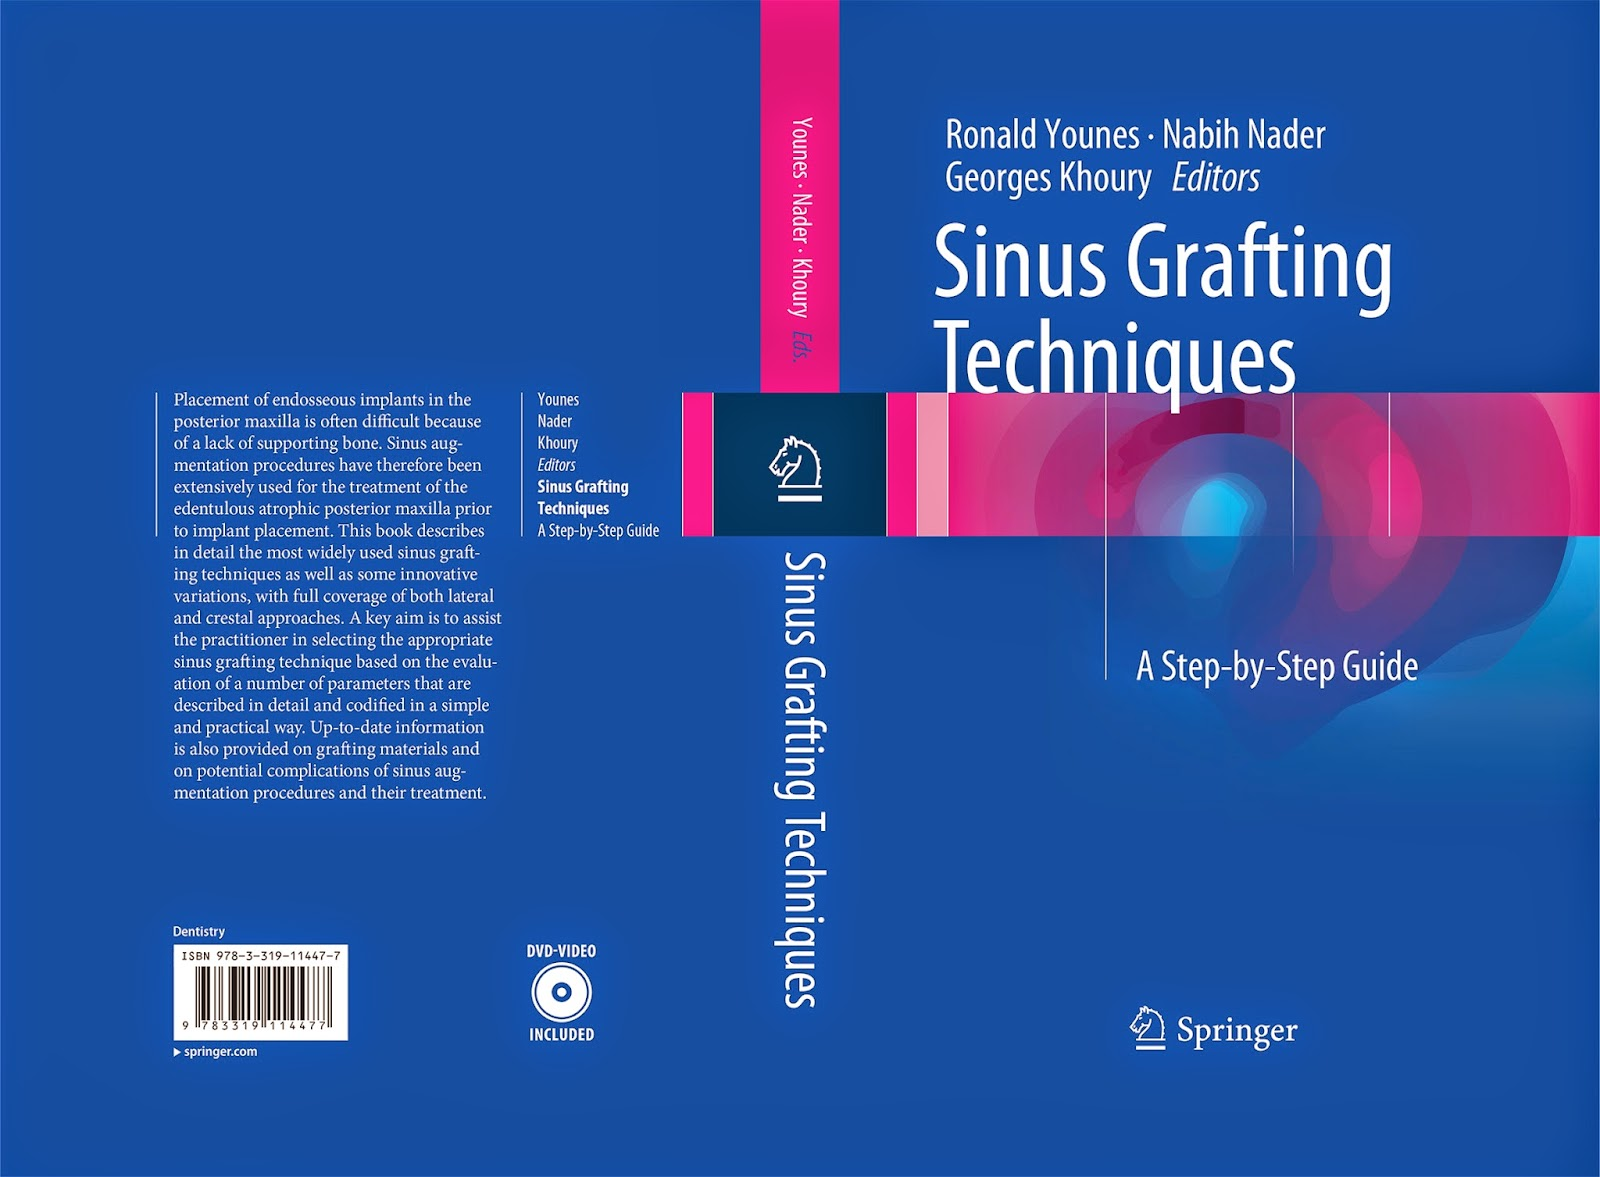 Sinus Grafting Techniques . A Step-by-Step Guide